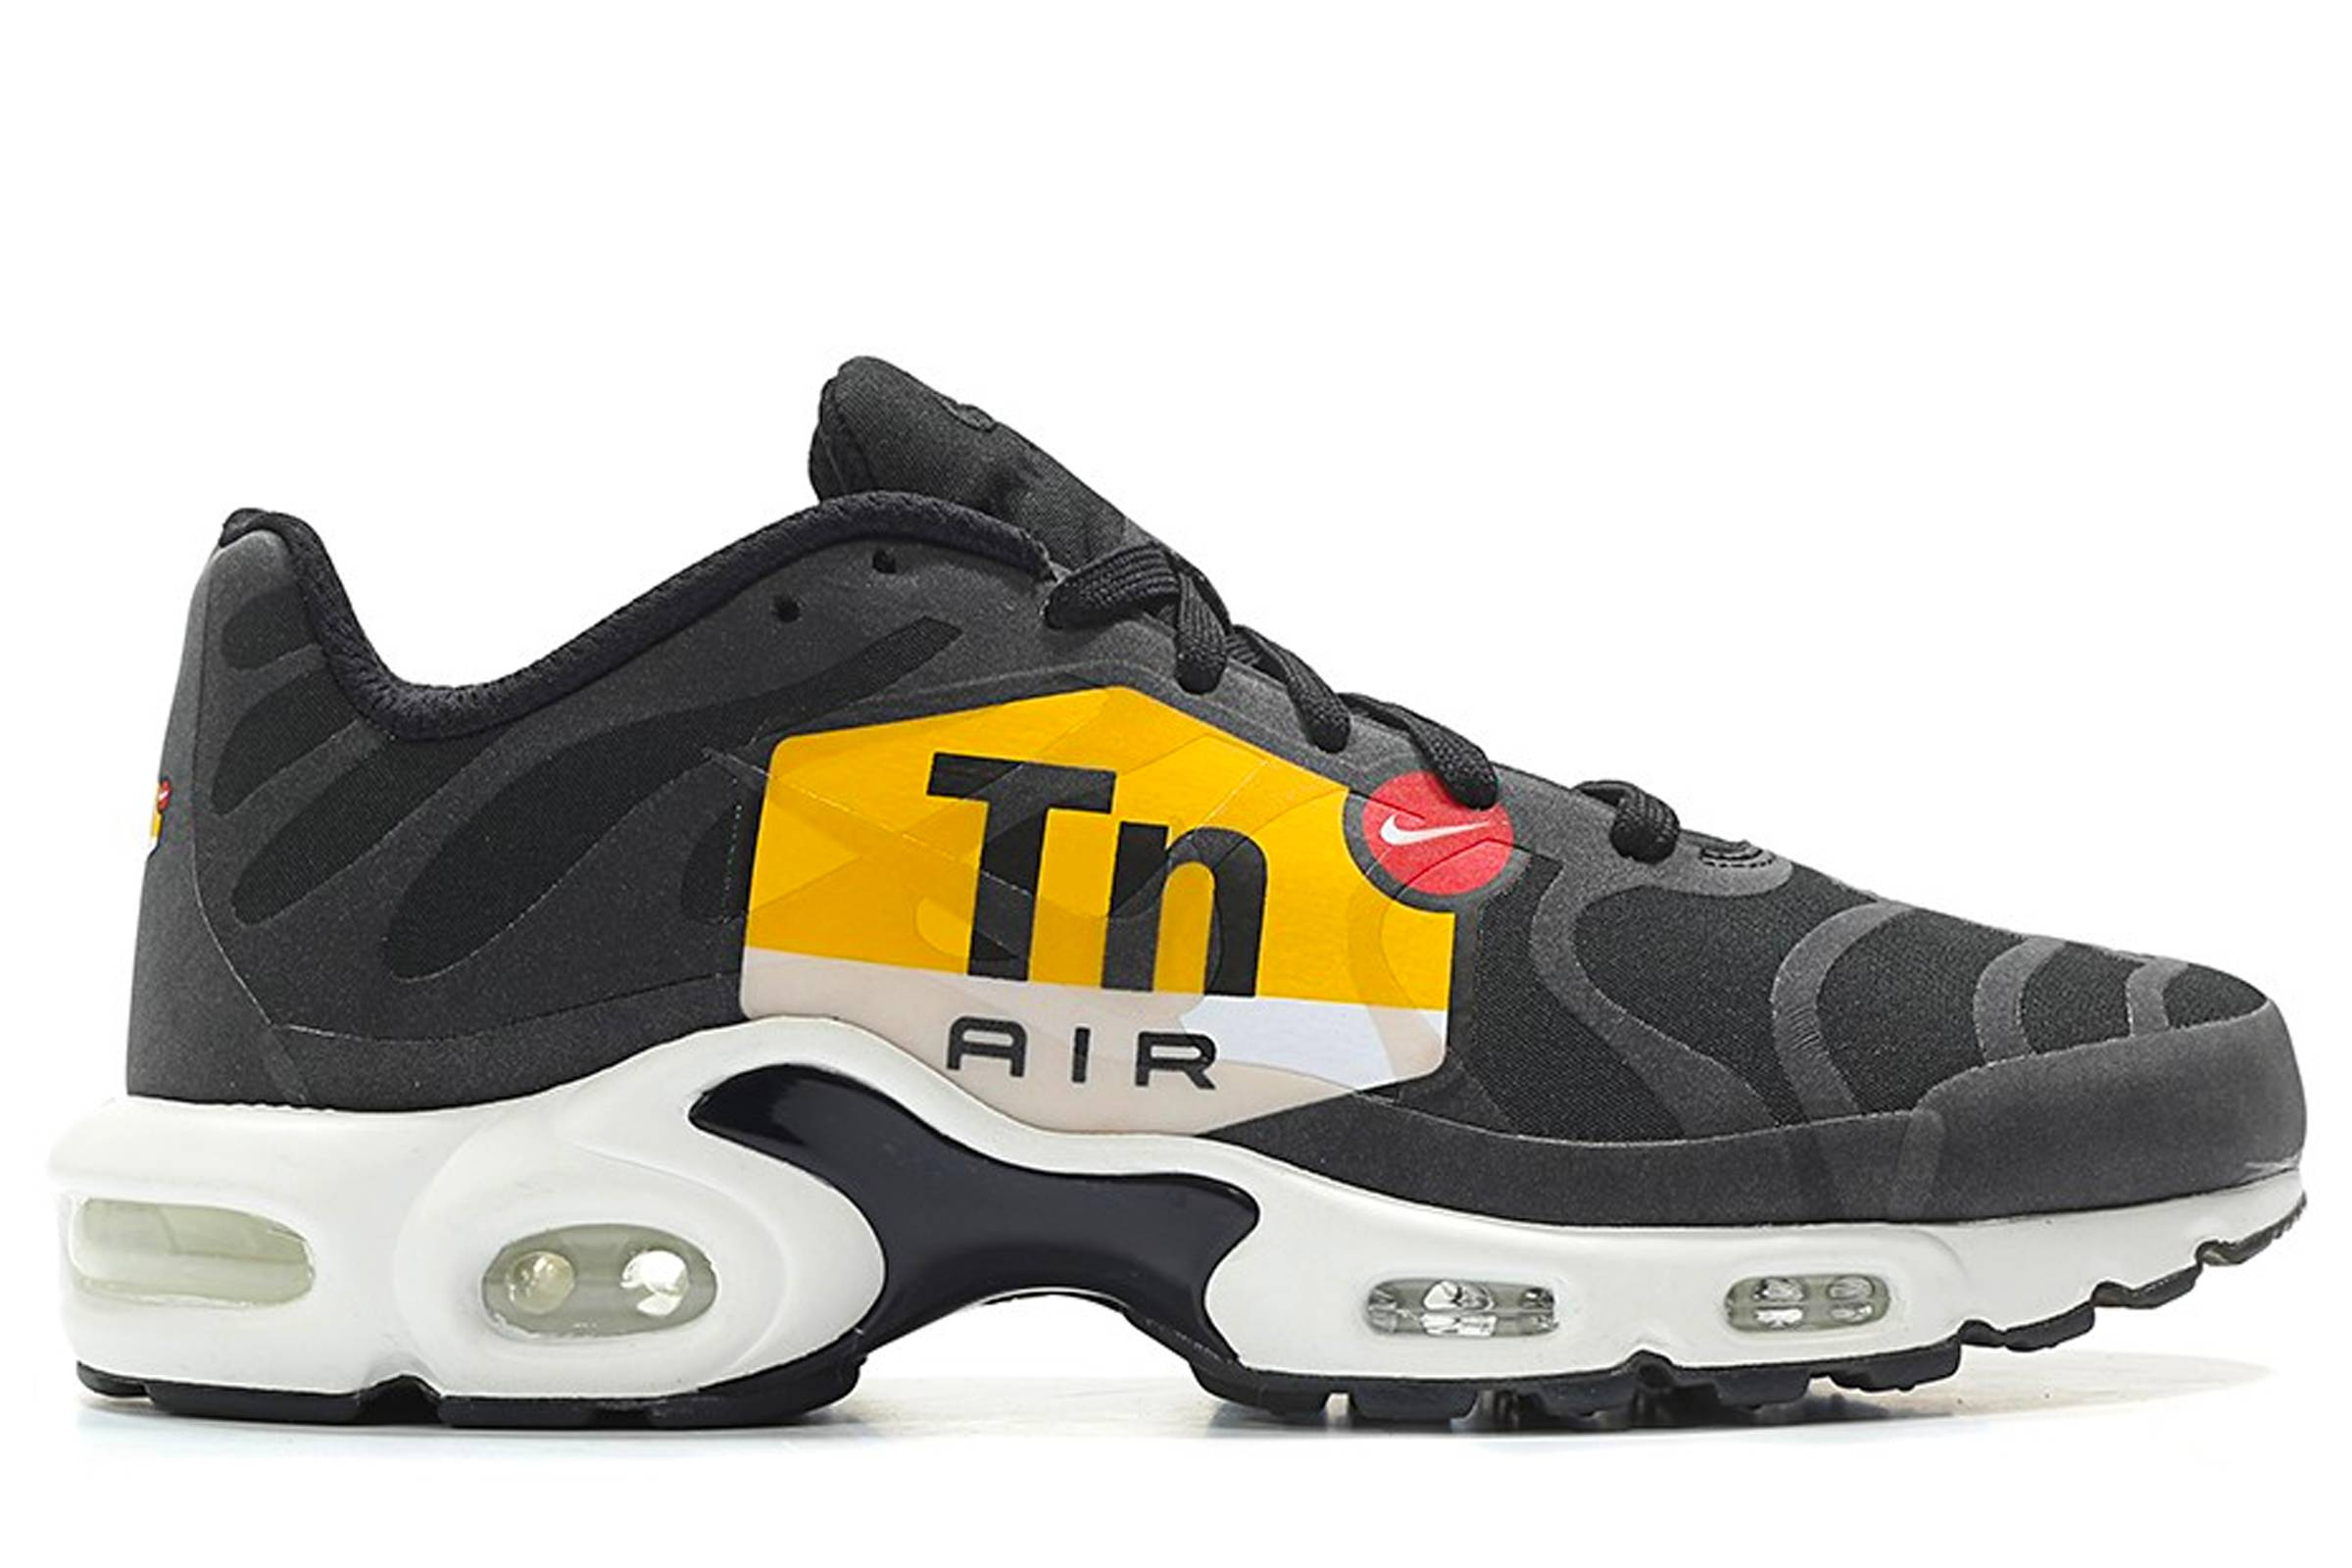 06b4e2666c Tuned Up: A History of the Air Max Plus - Air Max Plus History | Grailed